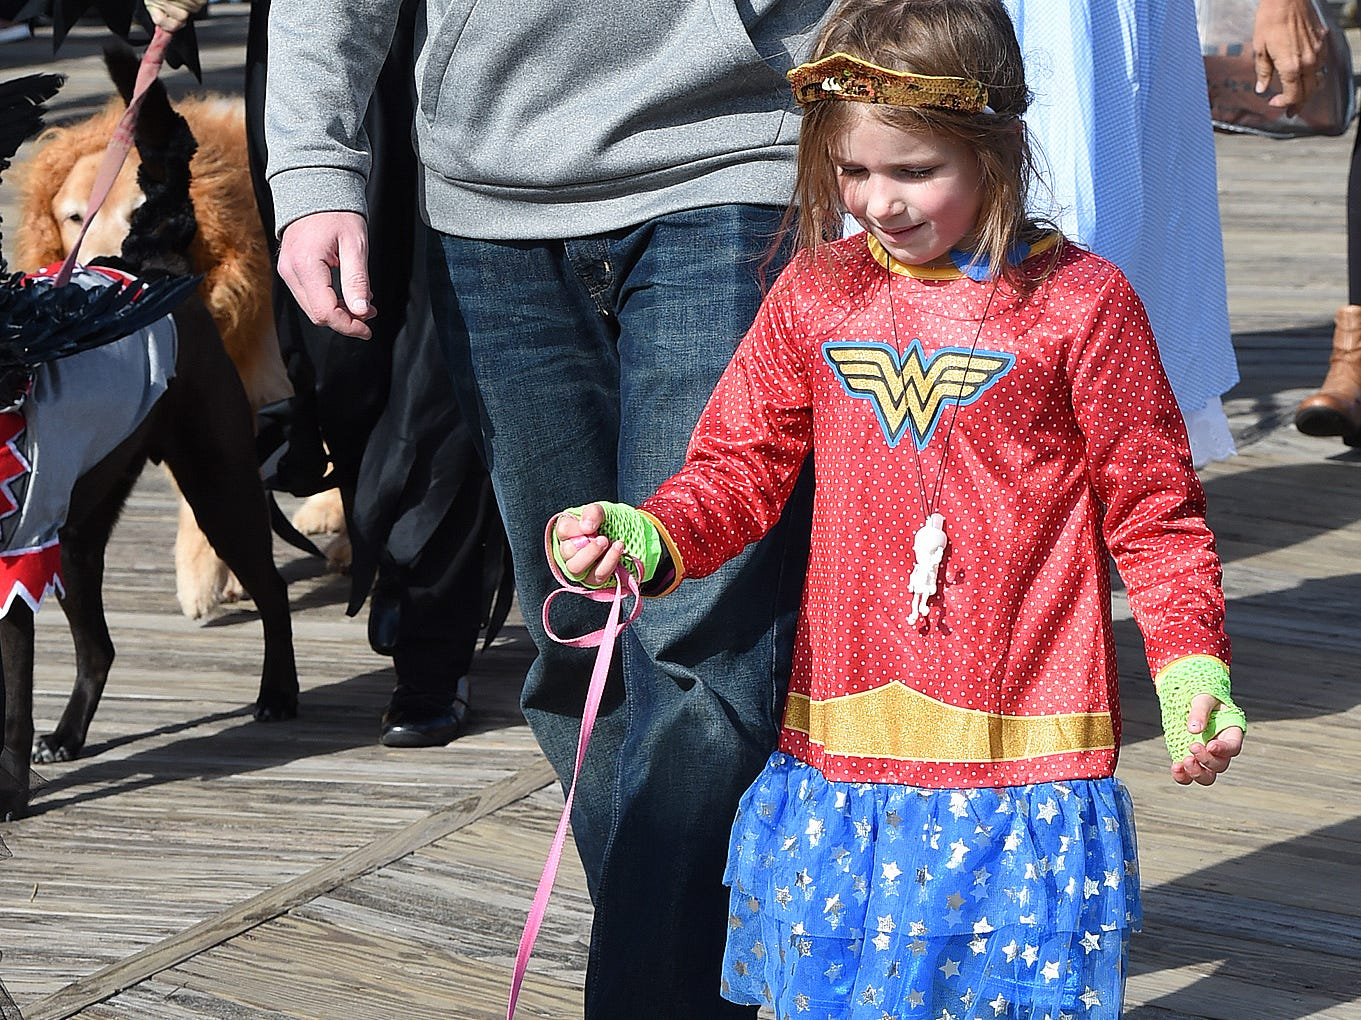 Crowds still came as the Annual Sea Witch Festival was held on Saturday and Sunday Oct. 27-28 in downtown Rehoboth Beach. Events included a Costume Dog Parade, pony rides, lots of vendors, face painting, and many other activities as weather would allow.